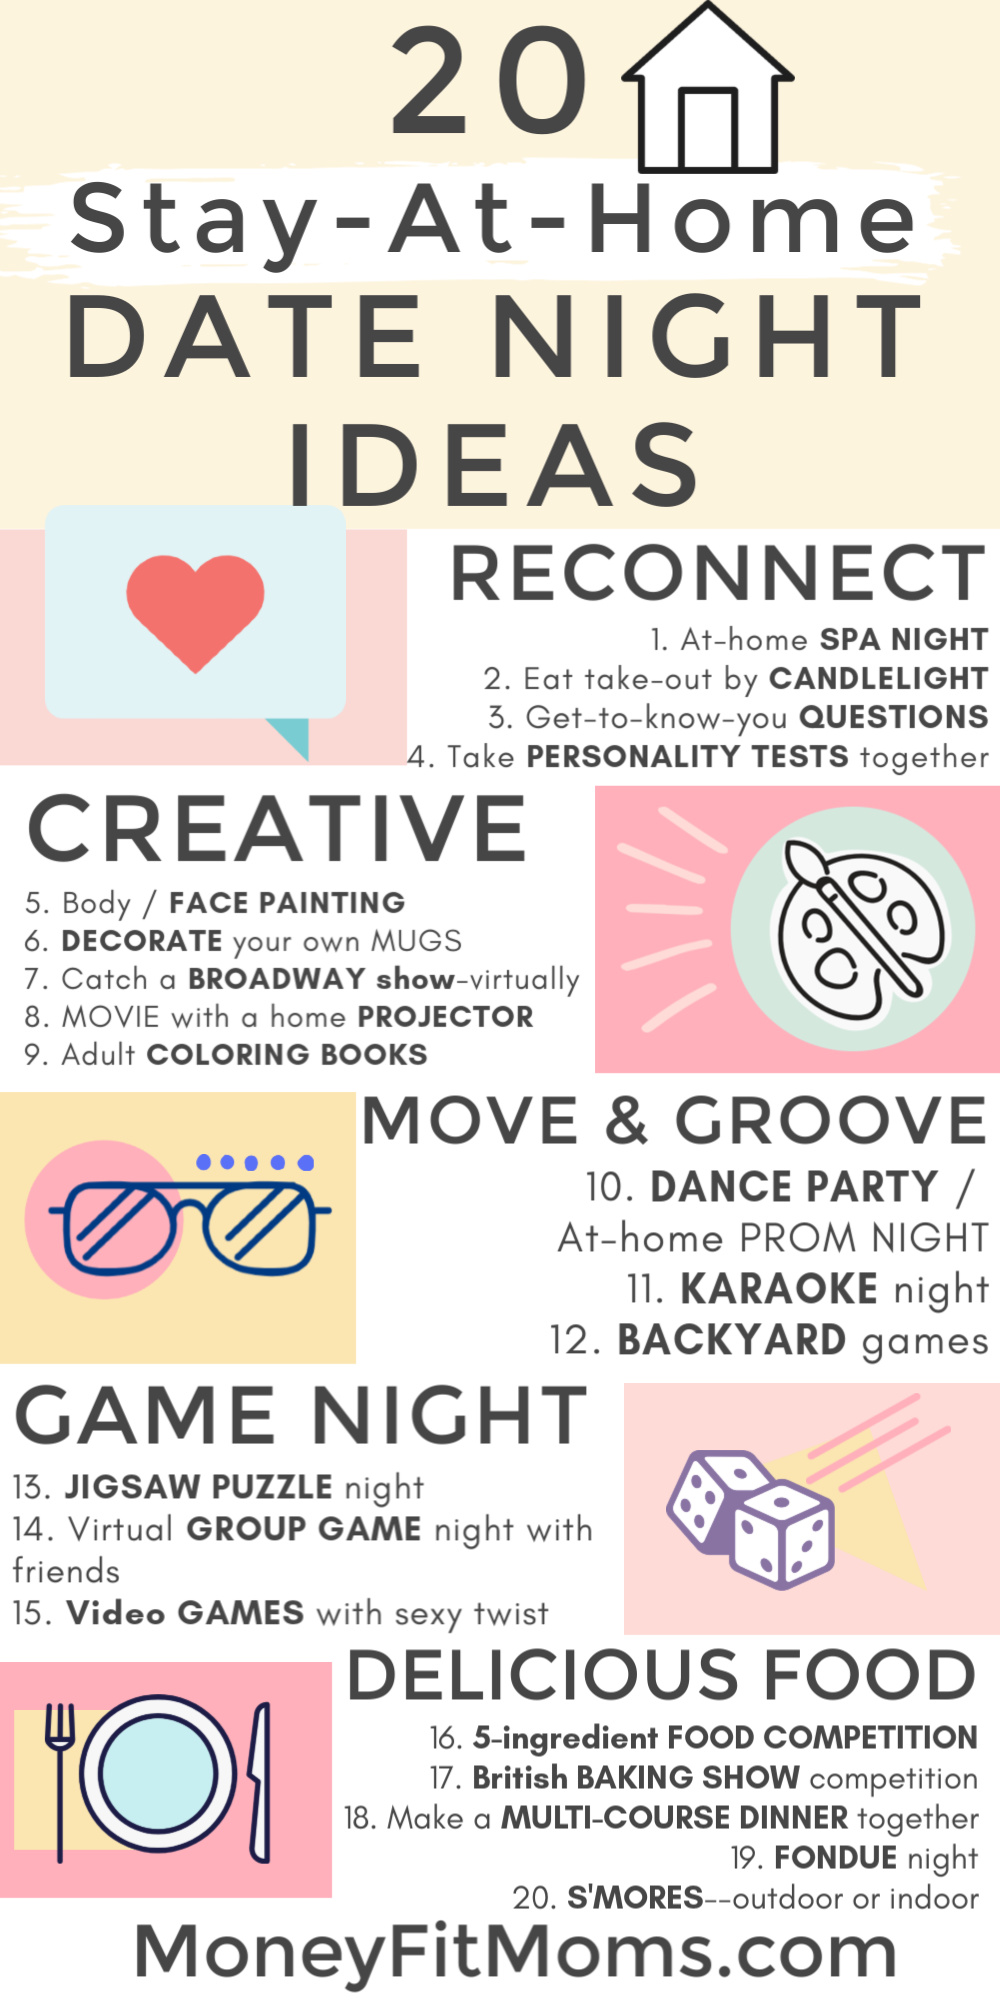 20 stay-at-home date night ideas